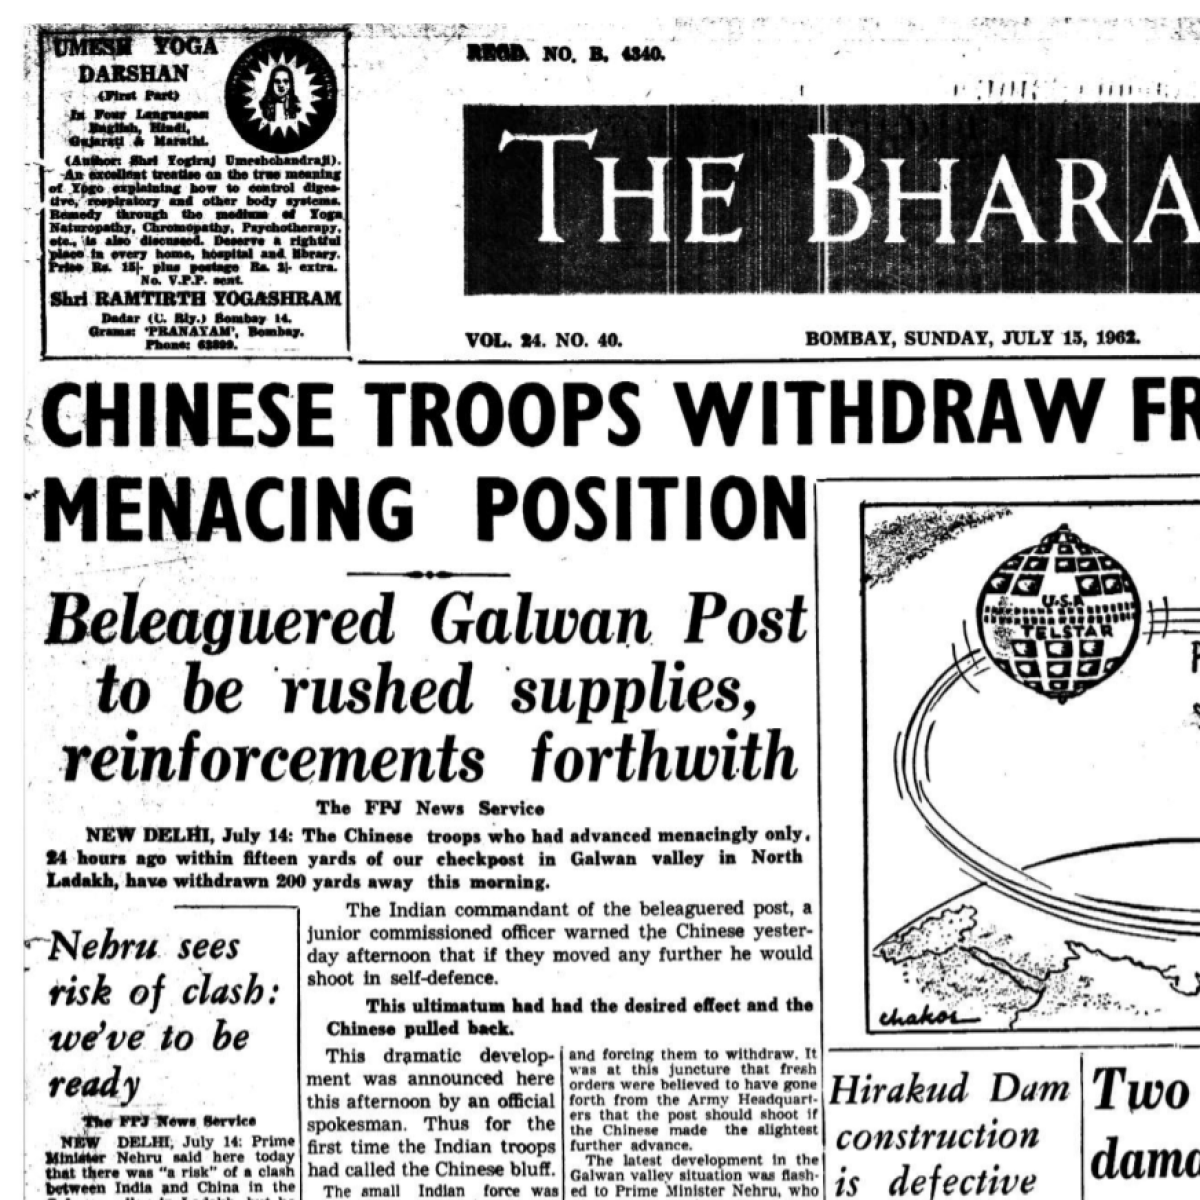 FPJ Flashback: Even as China 'pulls back' from Galwan, netizens ask New Delhi to be careful